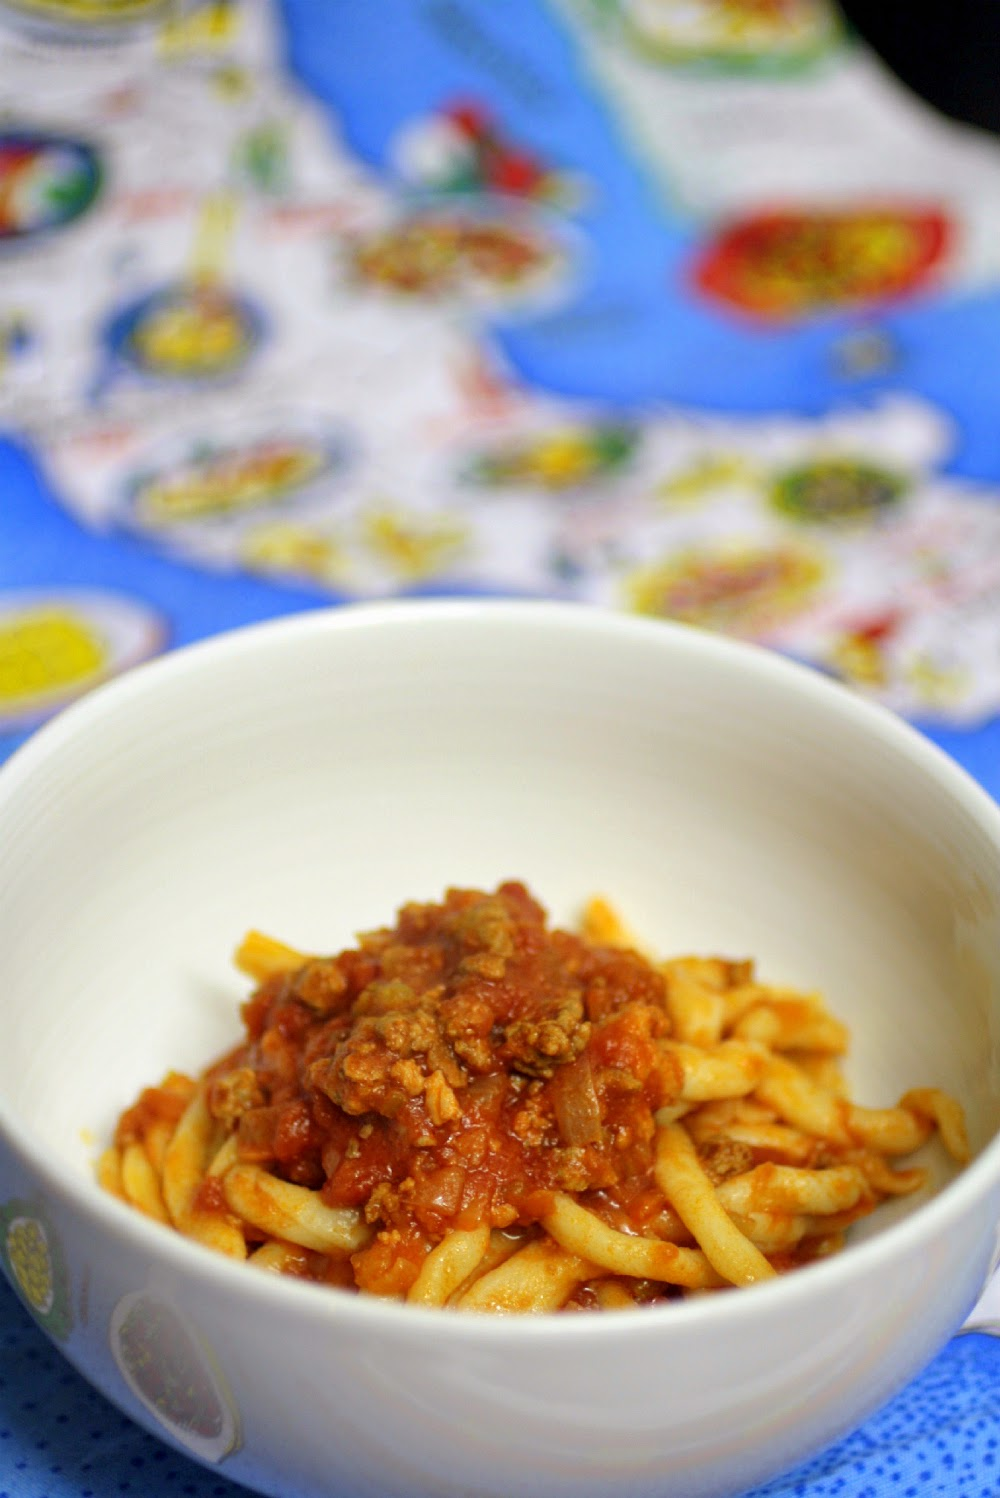 This recipe for ragu comes all the way from an Italian kitchen in the Emilio-Romagnia region.  Using only a few simple ingredients it is rich, filling and surprisingly easy!